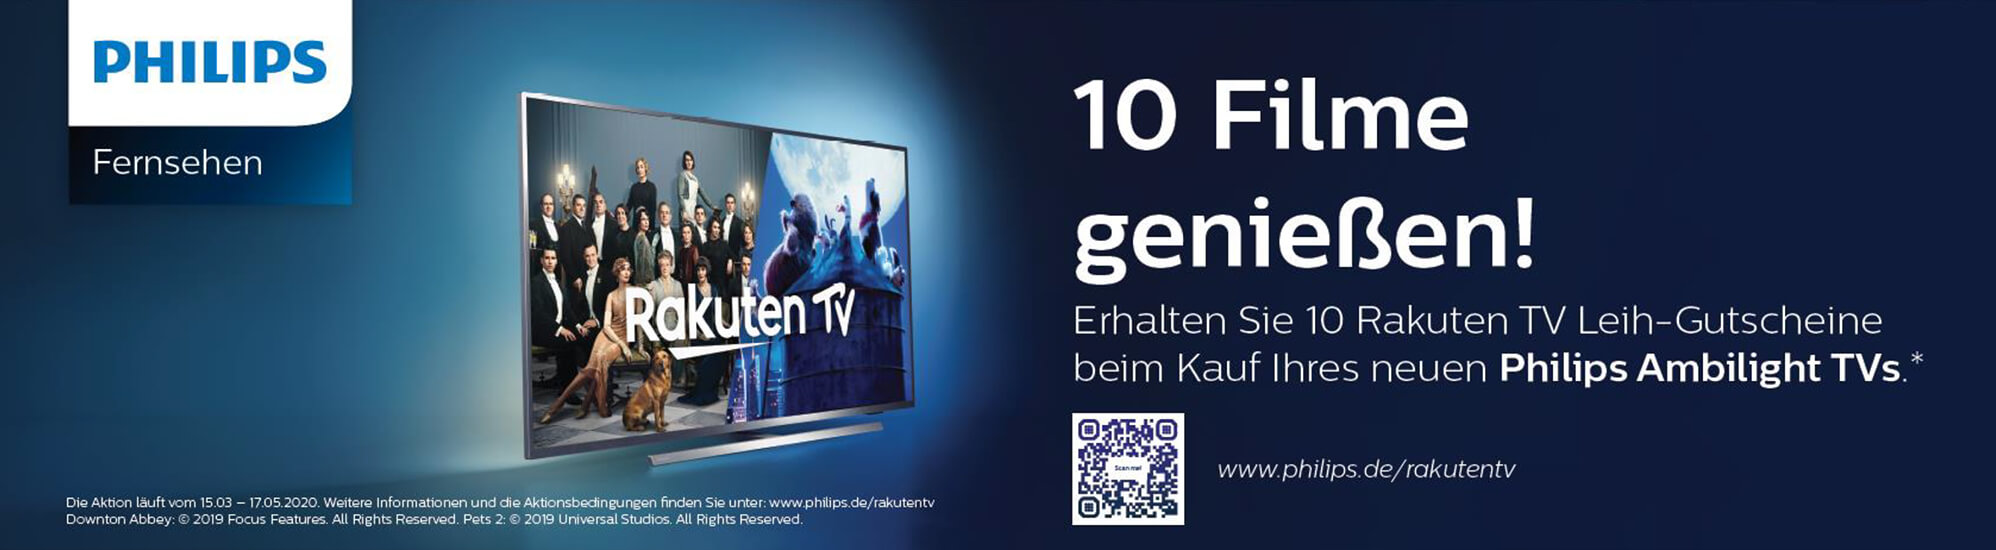 Philips Rakuten TV Aktion